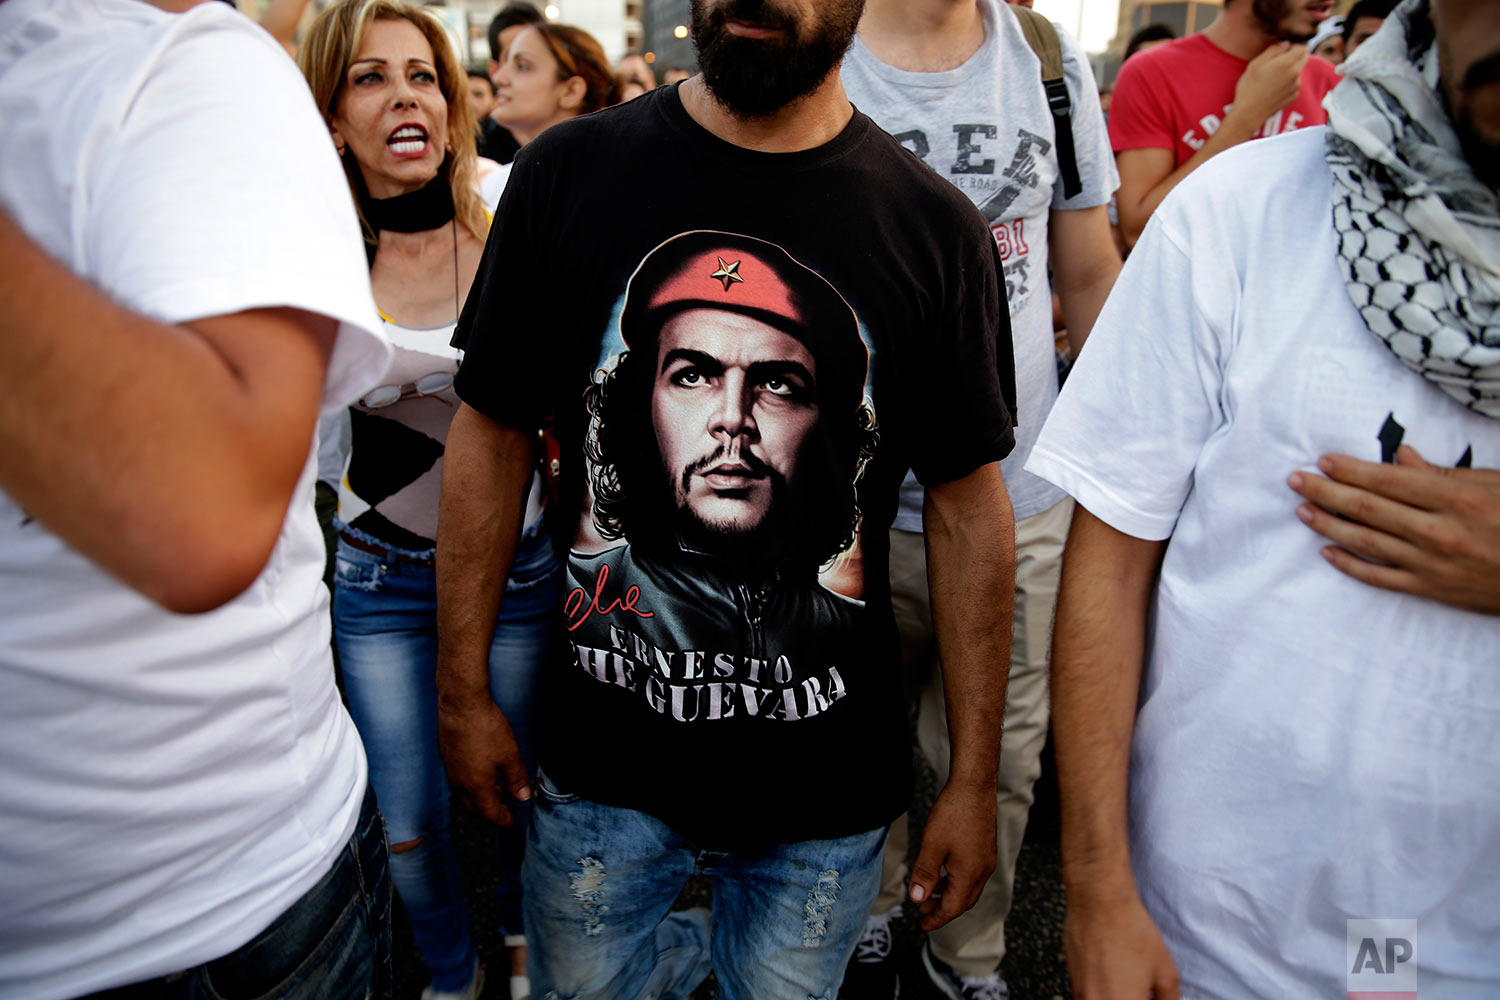 A Lebanese activist wears a portrait of ''Che Guevara'' as others chant slogans during a protest against the trash crisis and government corruption, in downtown Beirut, Lebanon, Wednesday, Aug. 26, 2015. (AP Photo/Hassan Ammar)